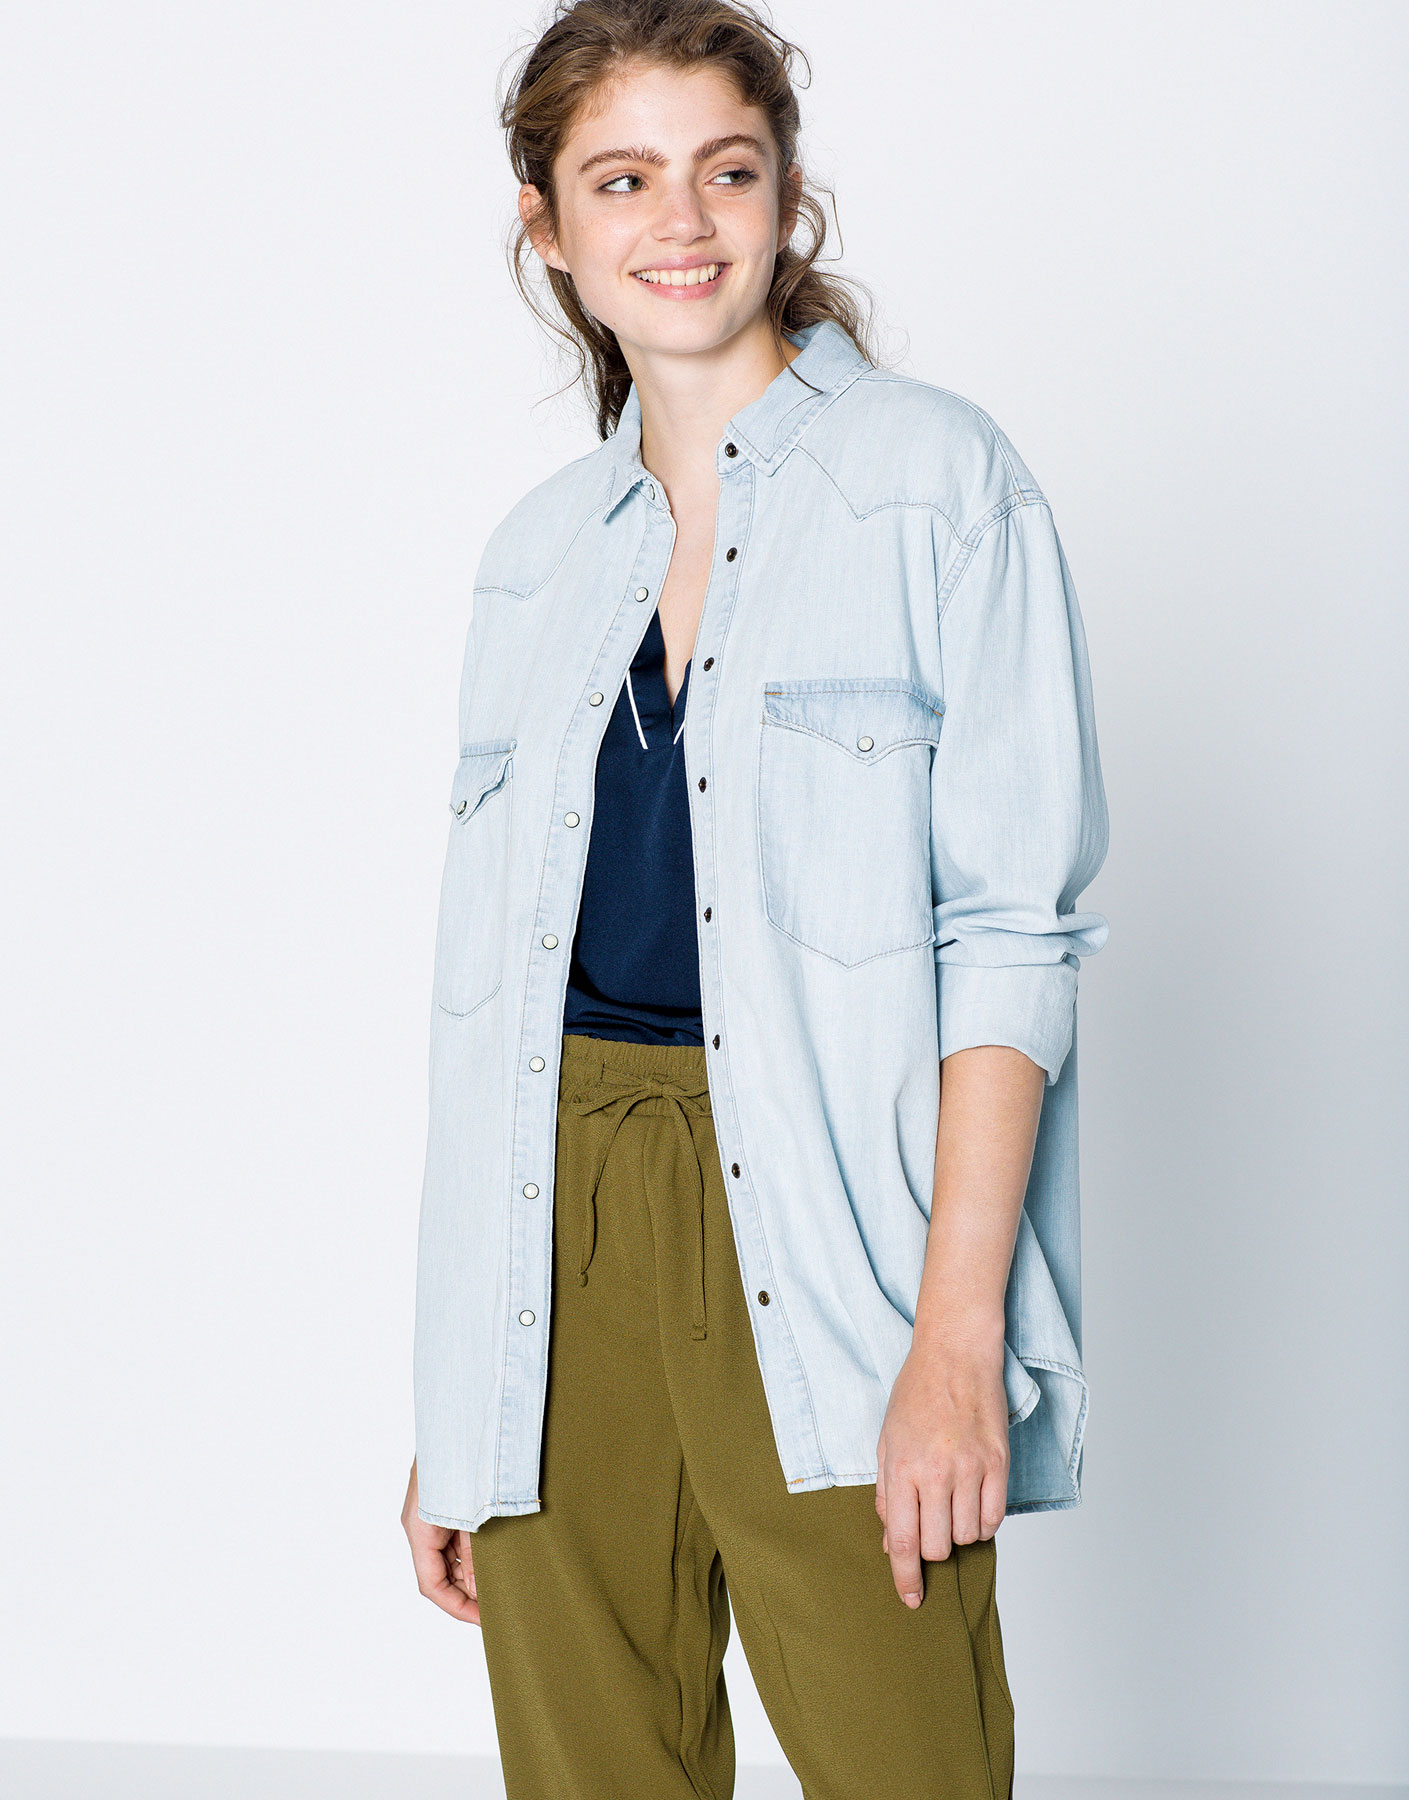 Western denim shirt with patches